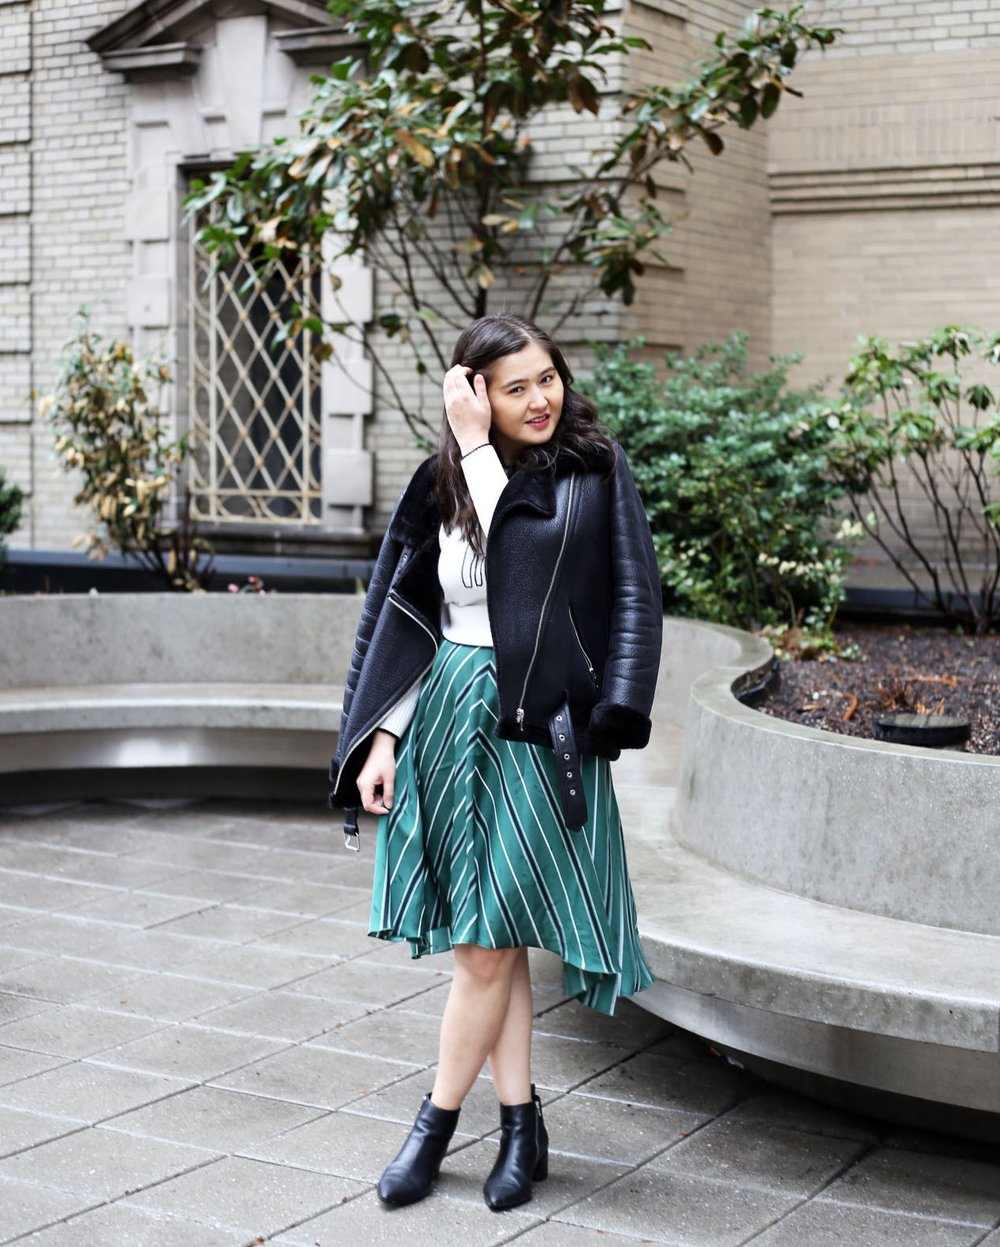 Jacket:  Zara . Skirt: H&M. Shirt:  Loft . Boots:  Everlane .